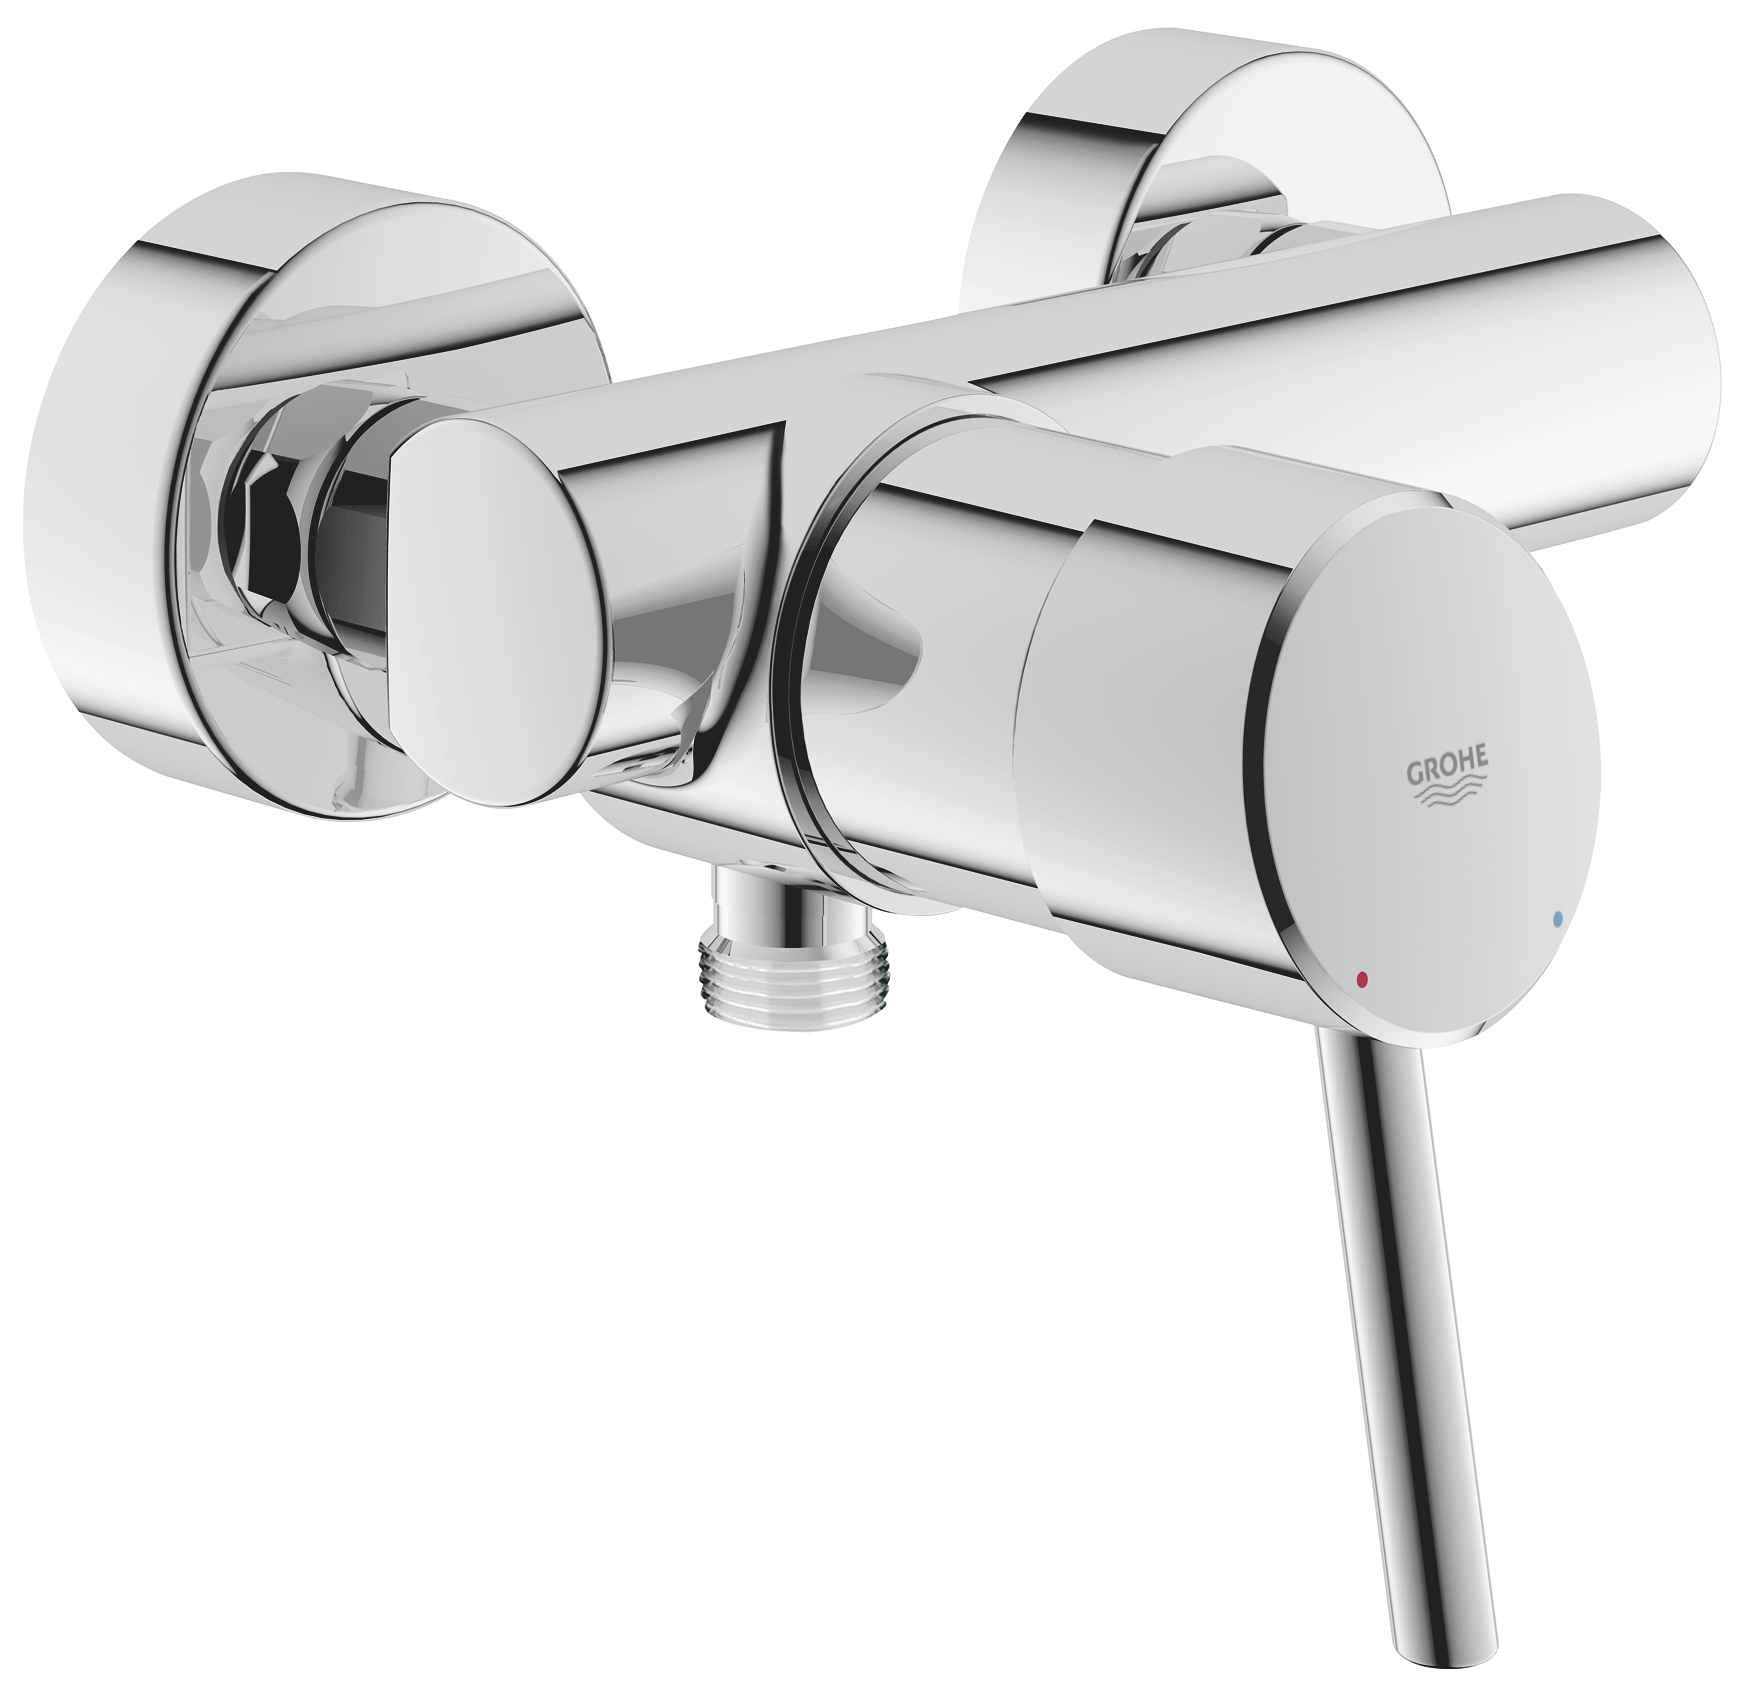 Grohe Concetto douchekraan 15 cm, chroom